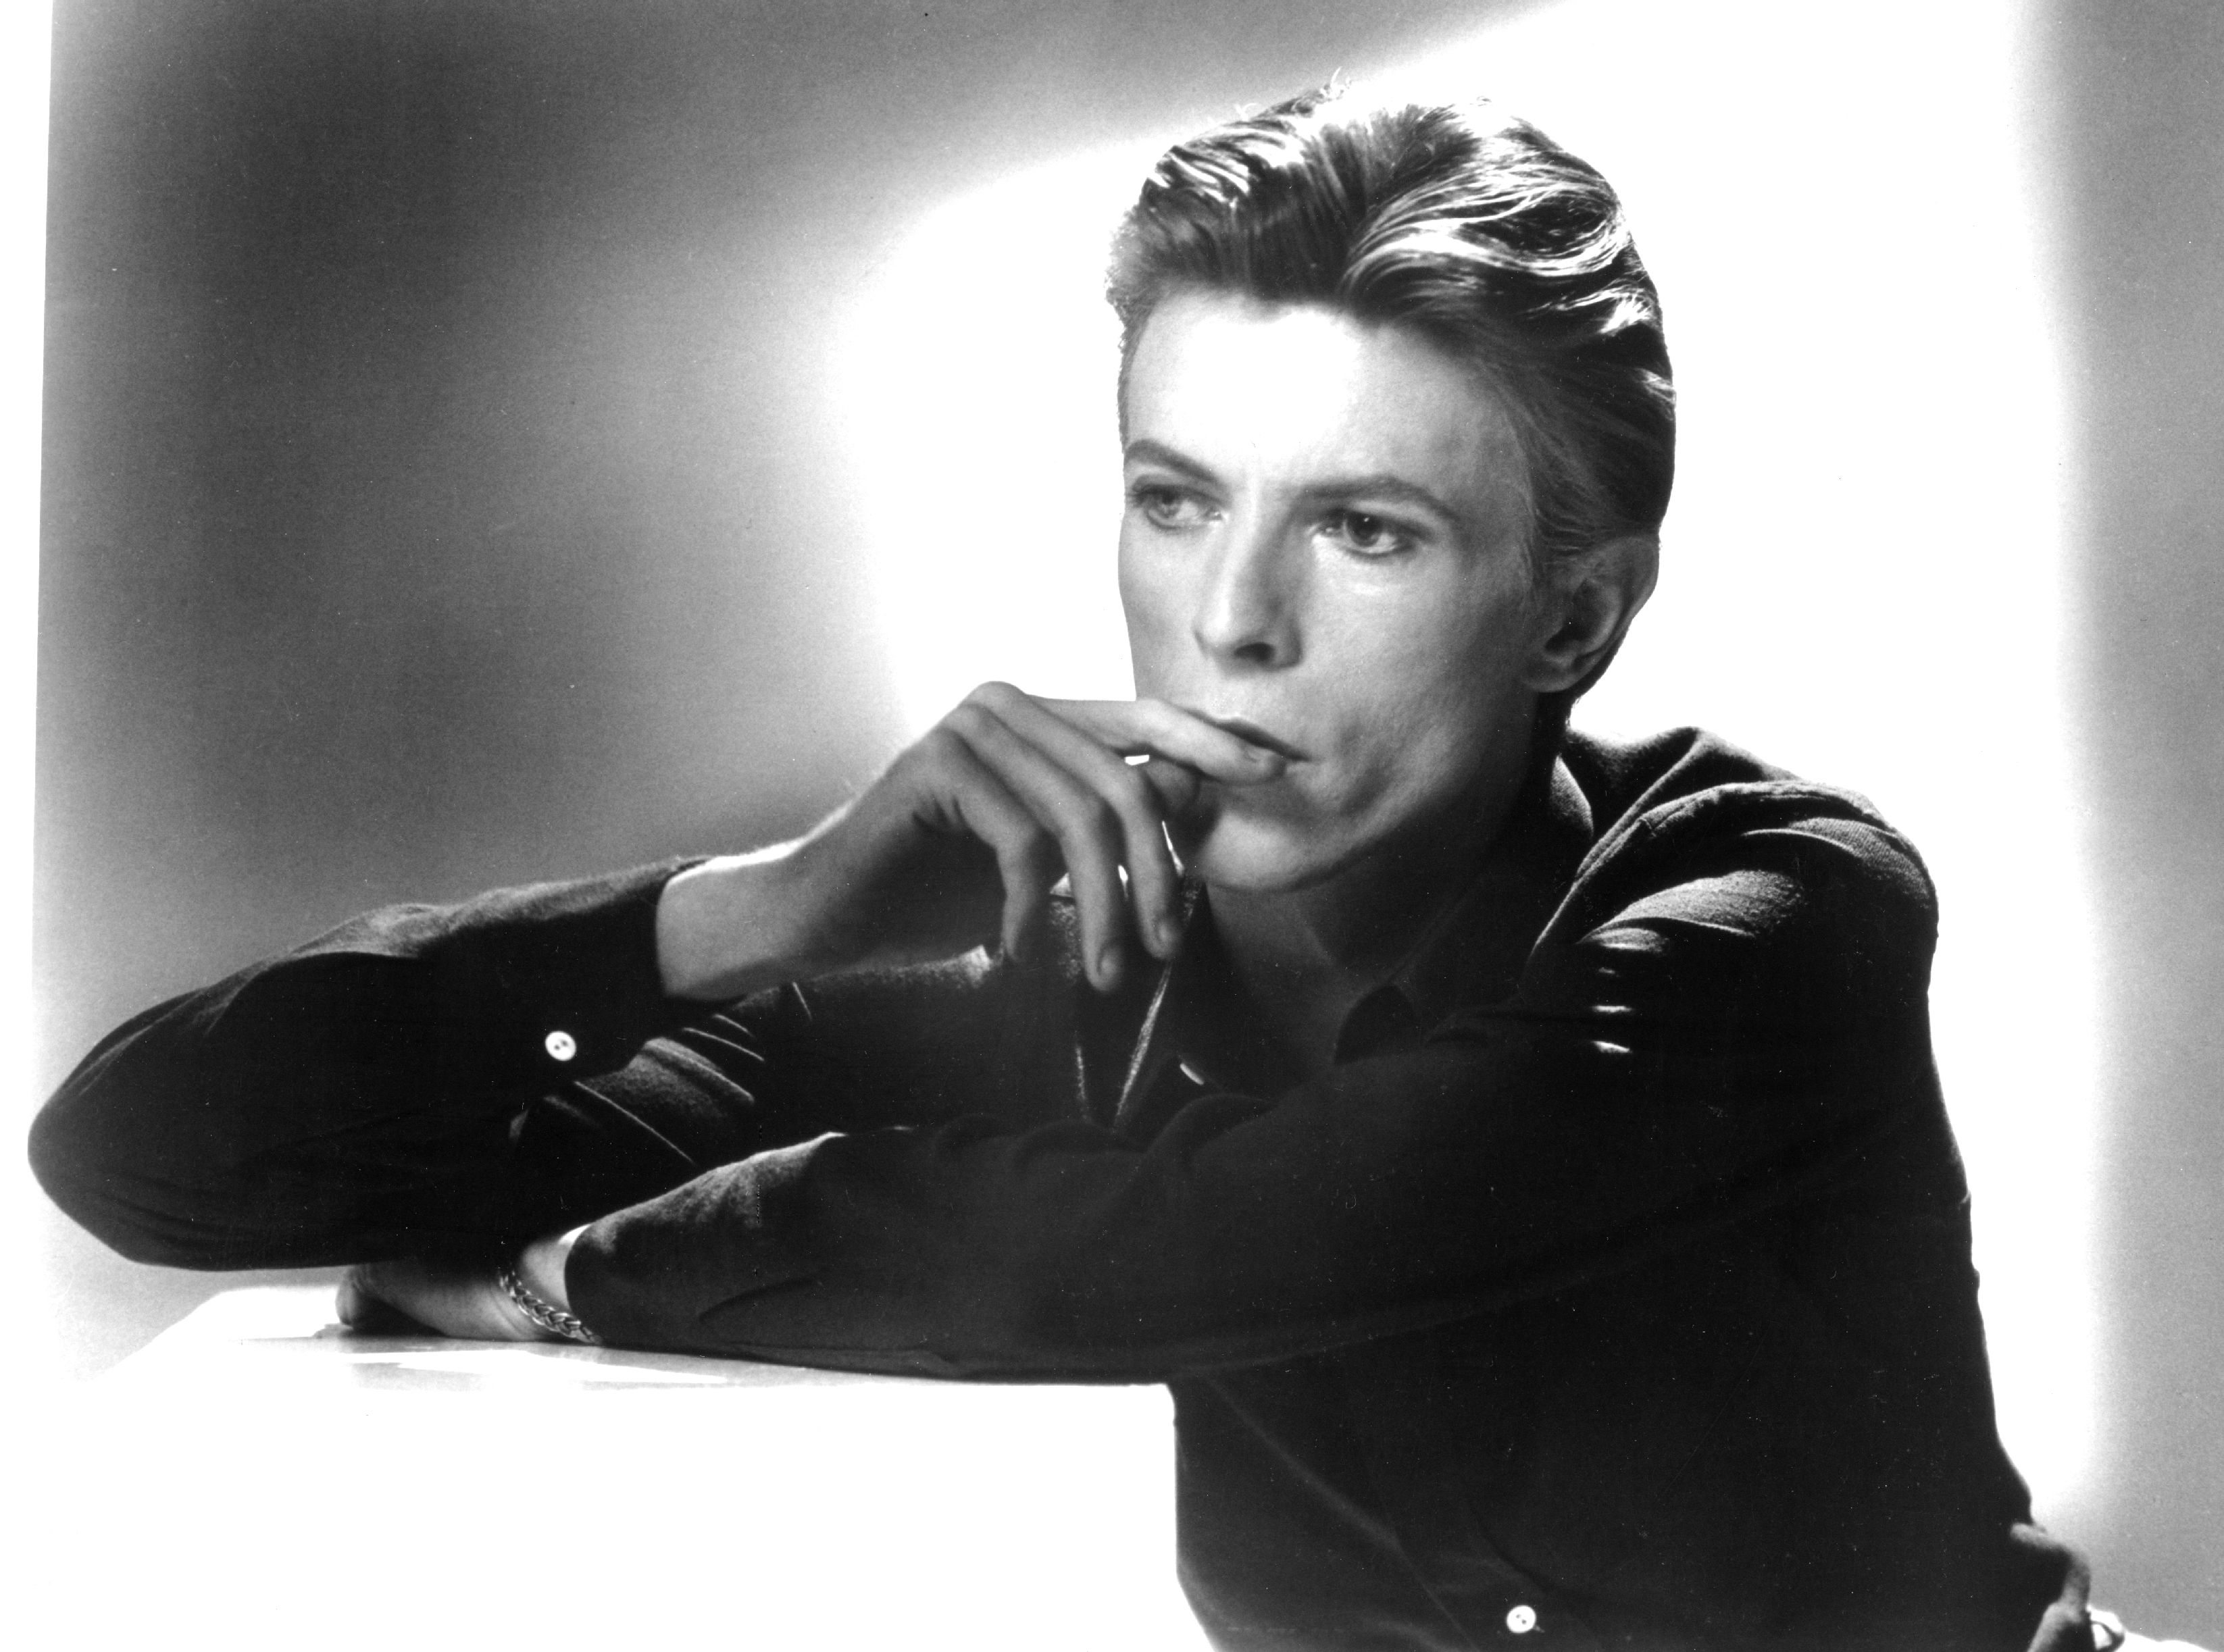 David Bowie: 7 Wild Quotes From the 'Station to Station' Era